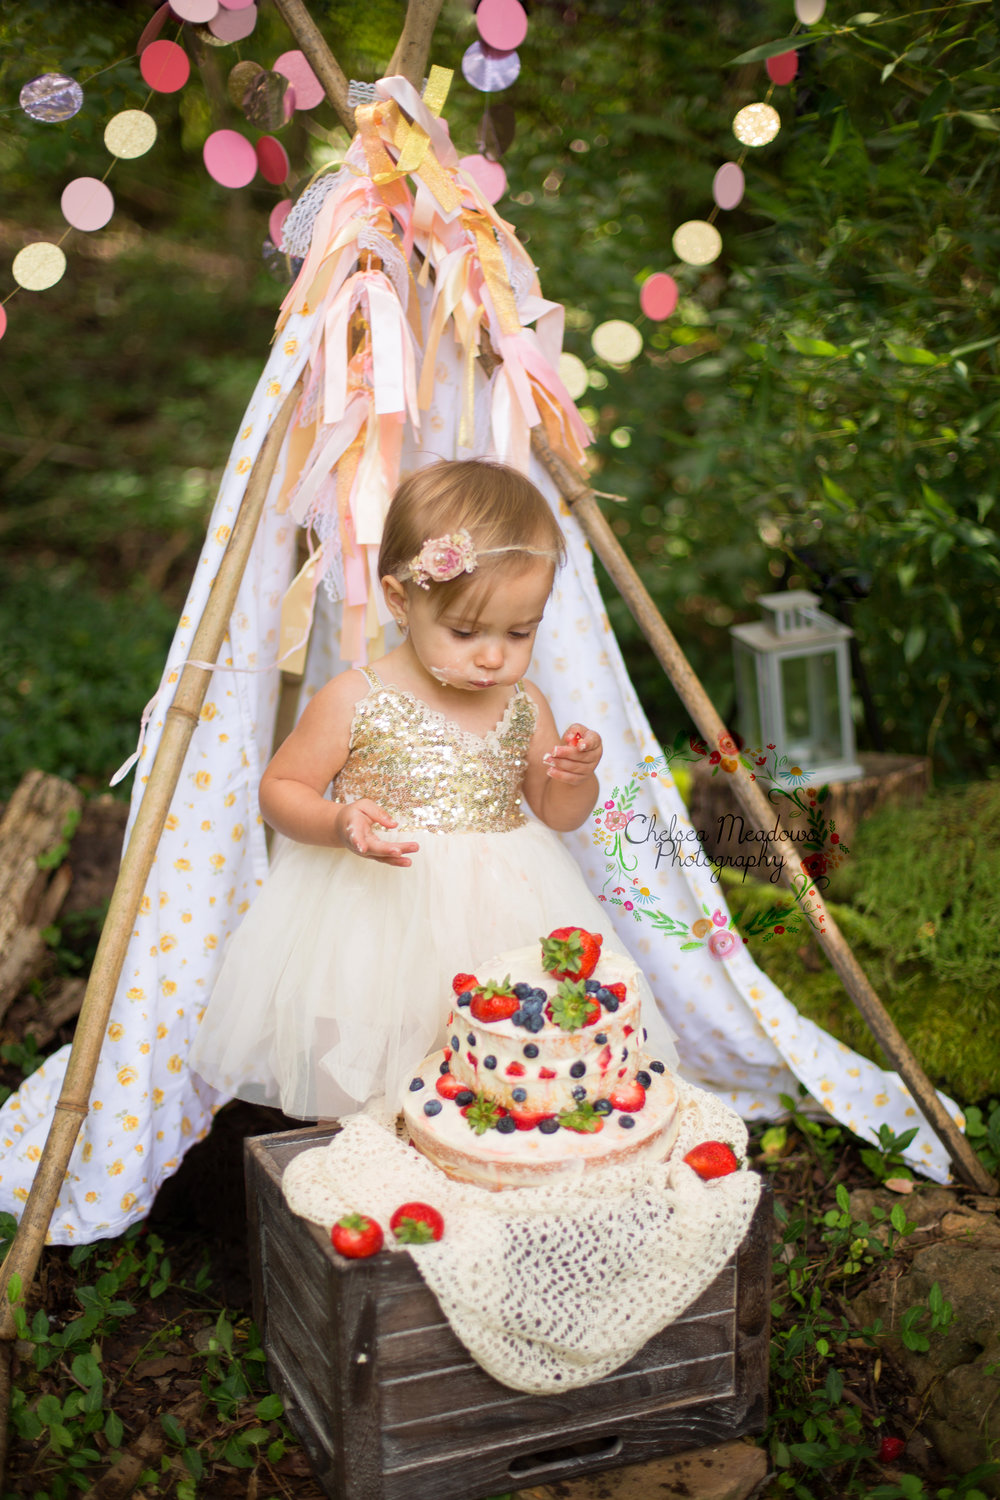 Paisley First Birthay Cake Smash - Nashville Family Photographer - Chelsea Meadows Photography (24).jpg